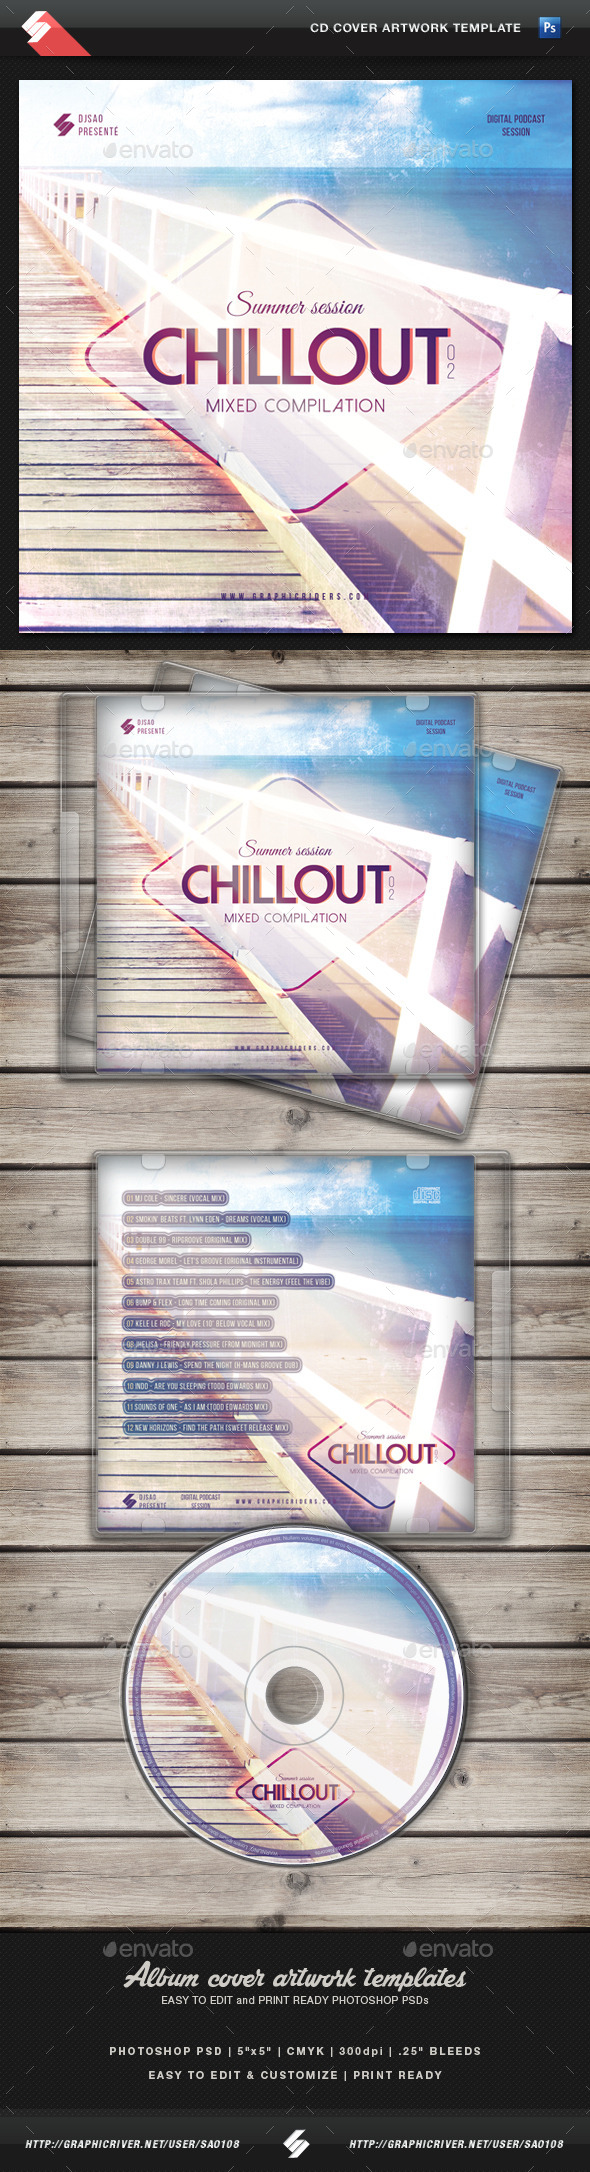 GraphicRiver Summer Chillout Vol.2 CD Cover Template 11564385